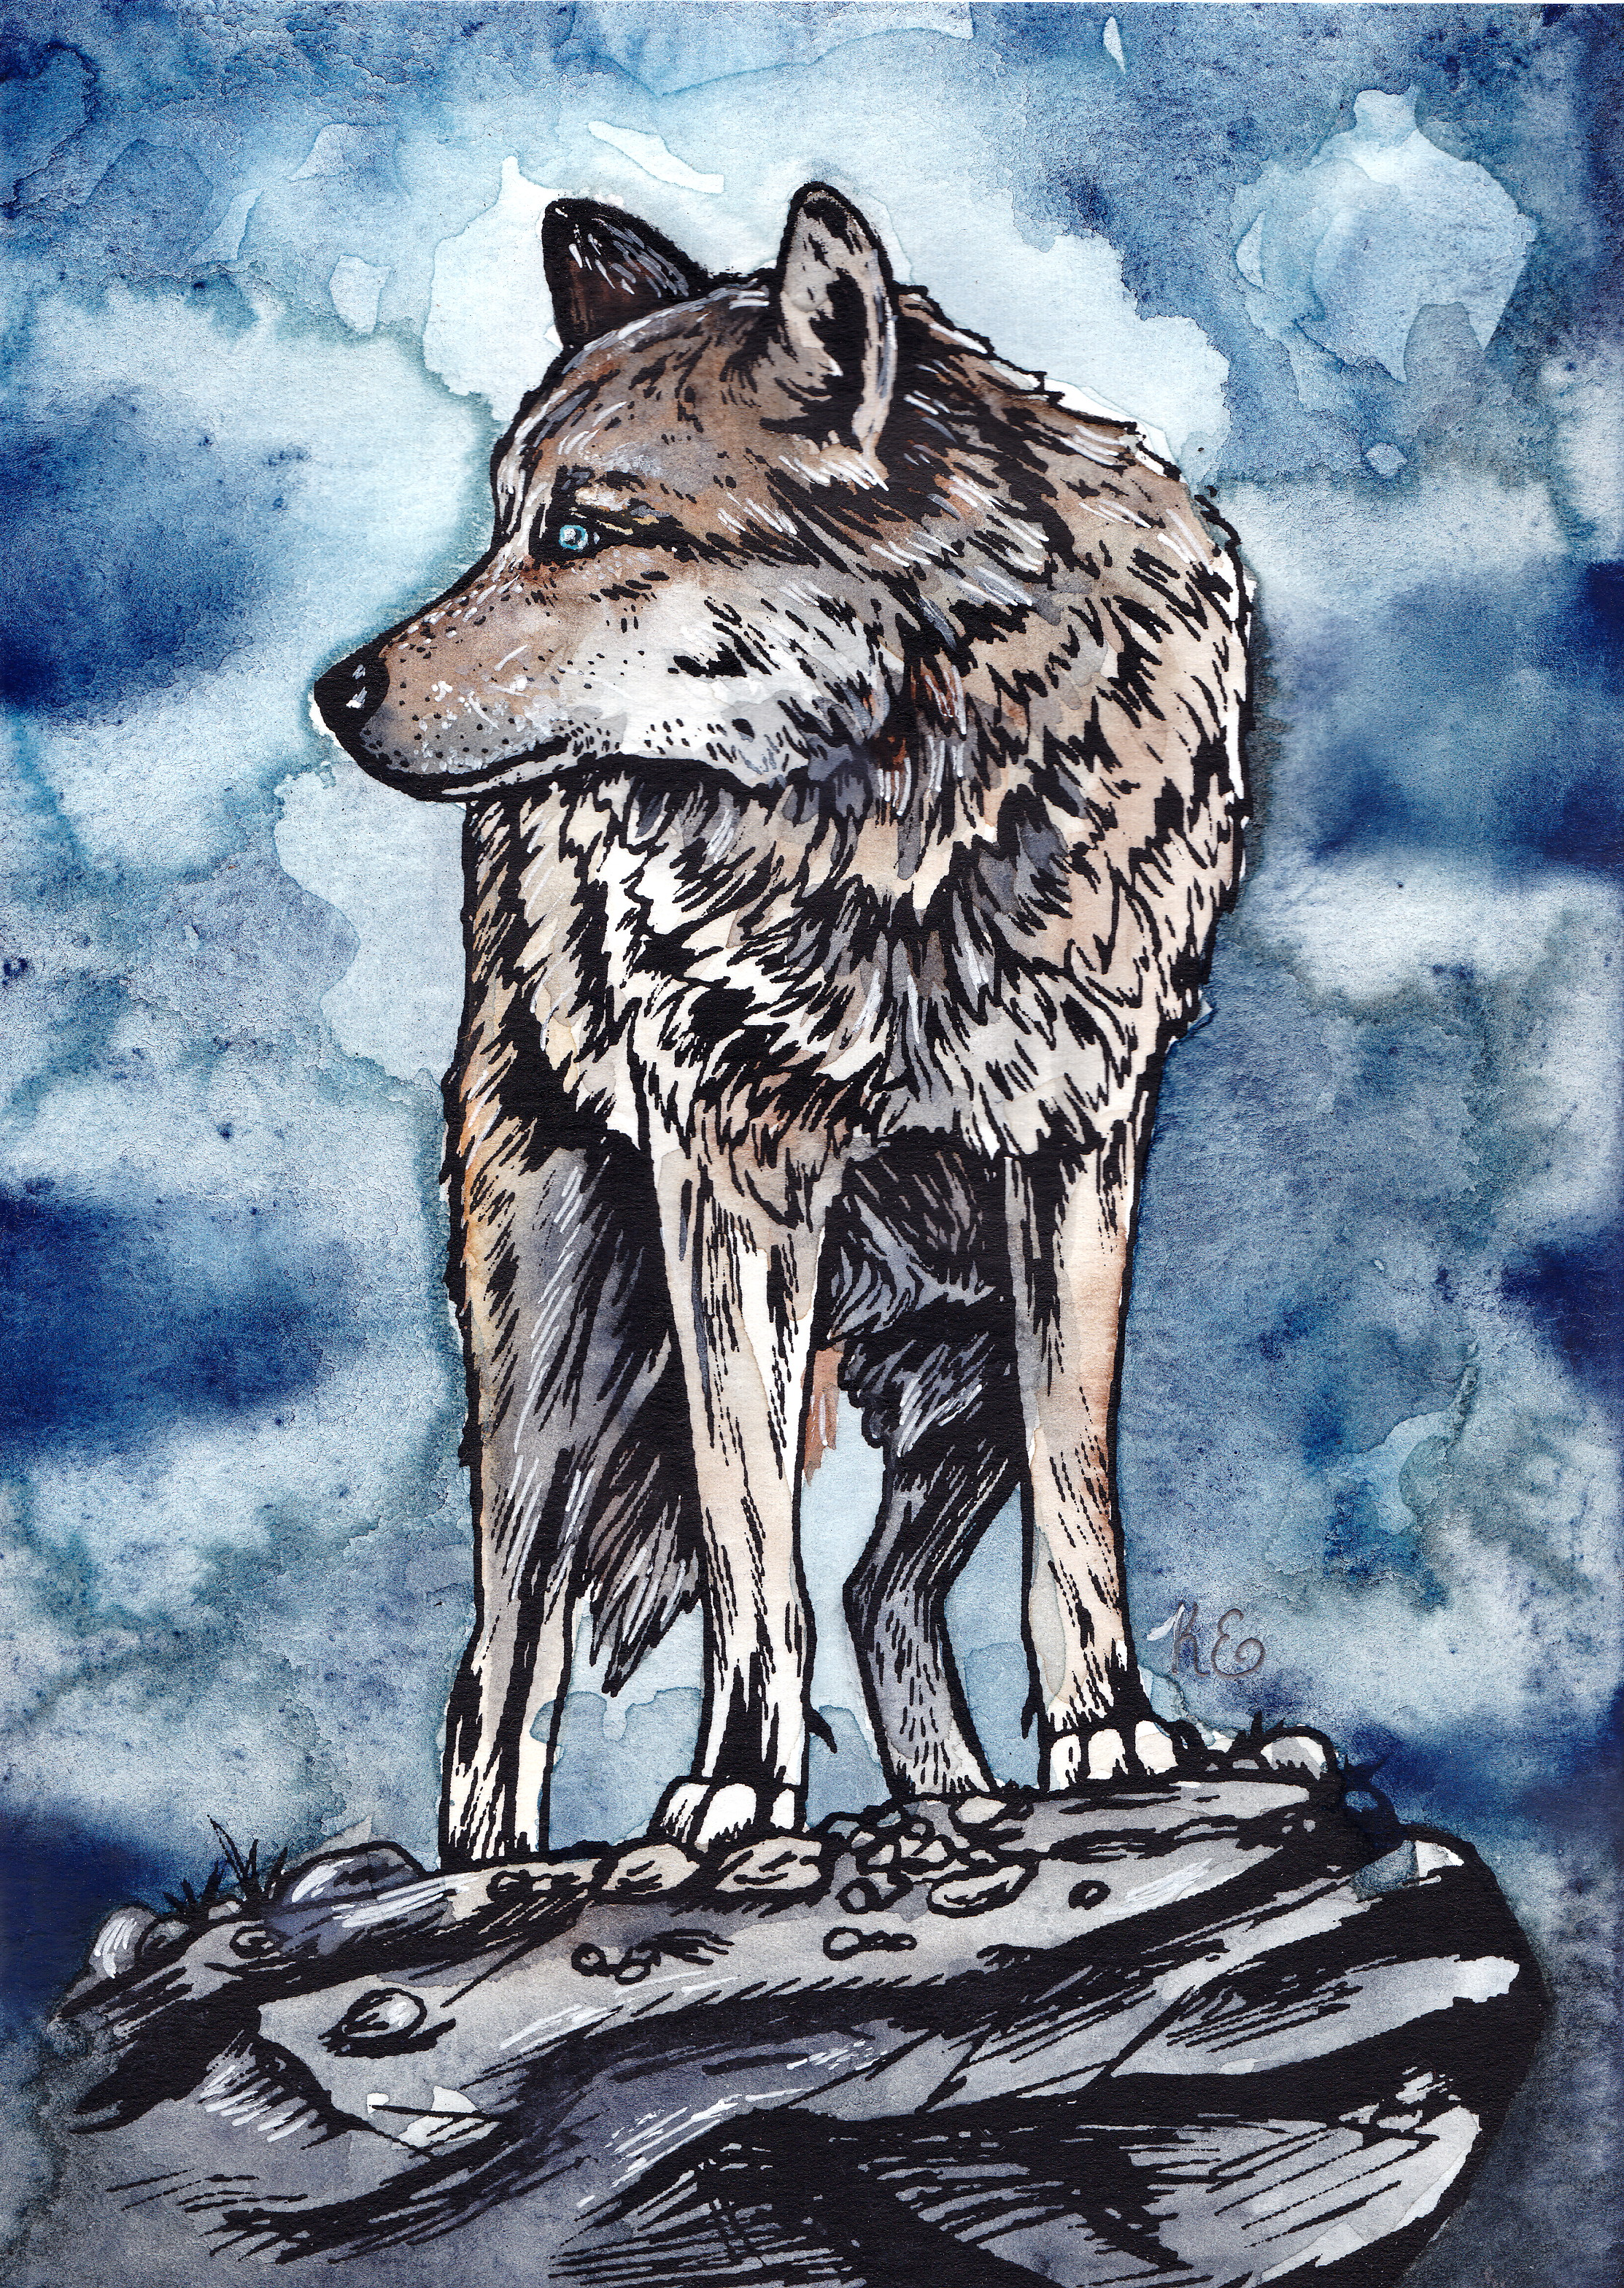 Fierce wolf watercolored 5 x 7.jpg